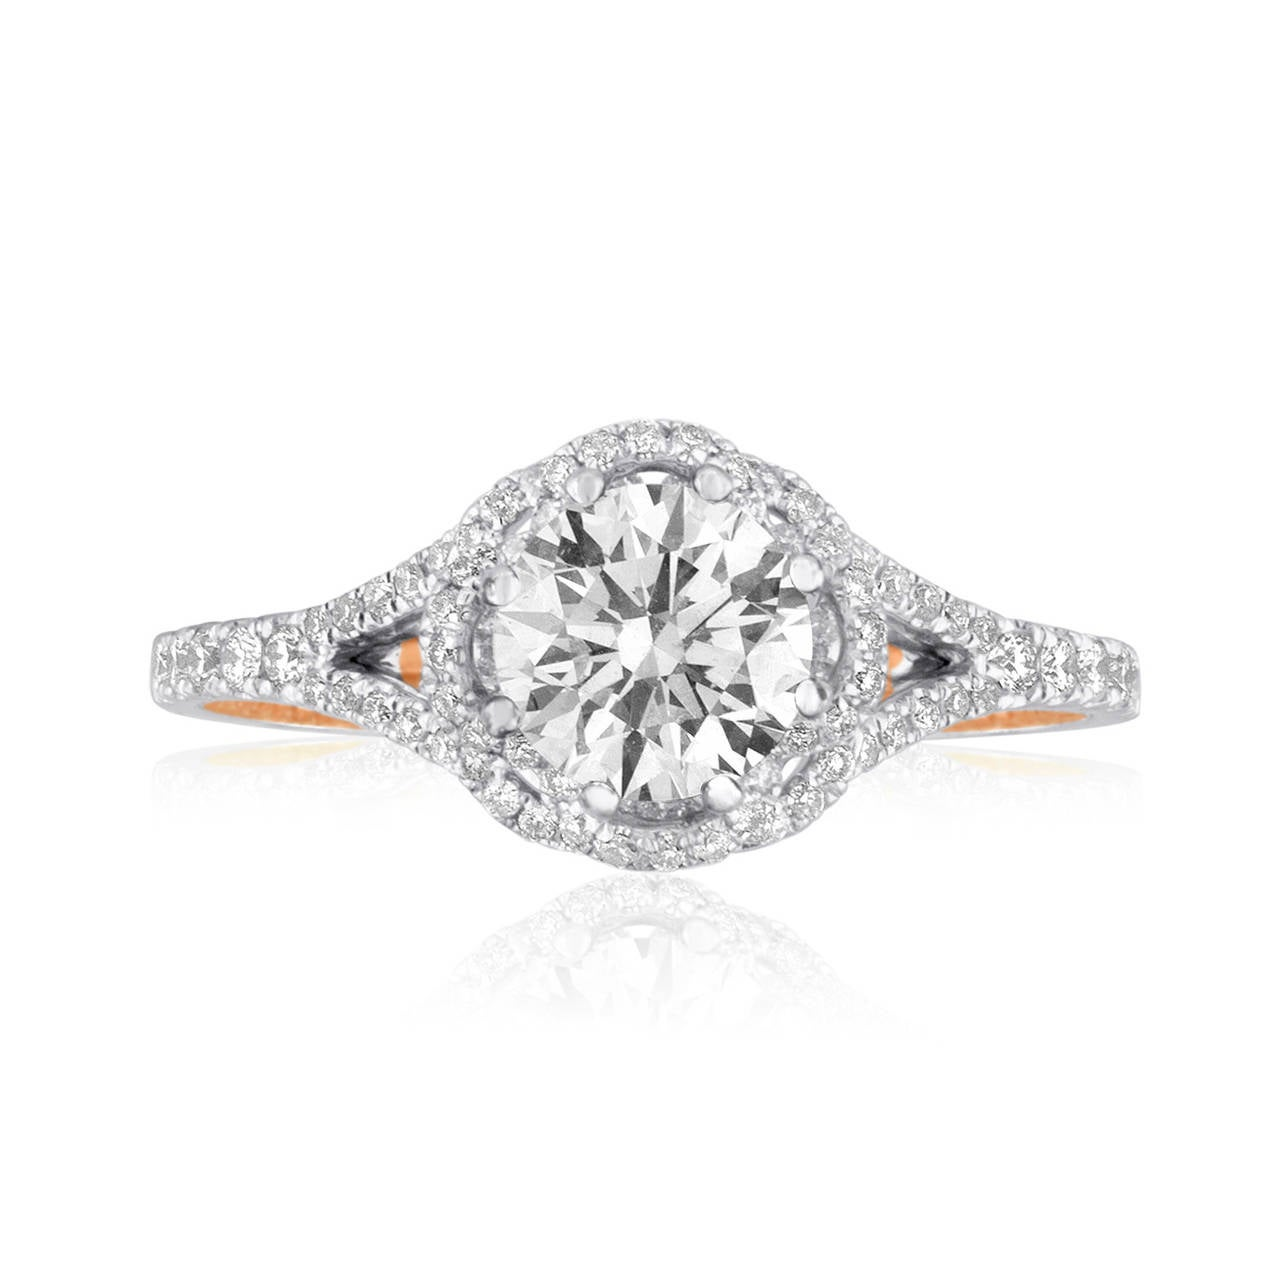 Stunning one of a kind diamond engagement ring. The ring is 18K Rose Gold and White Gold The ring has 0.68ct in small white diamonds G SI. The center diamond is GIA 1.08ct F VVS1 XXX. The ring weighs 3.5 grams. The ring is a size 6.5, cannot be